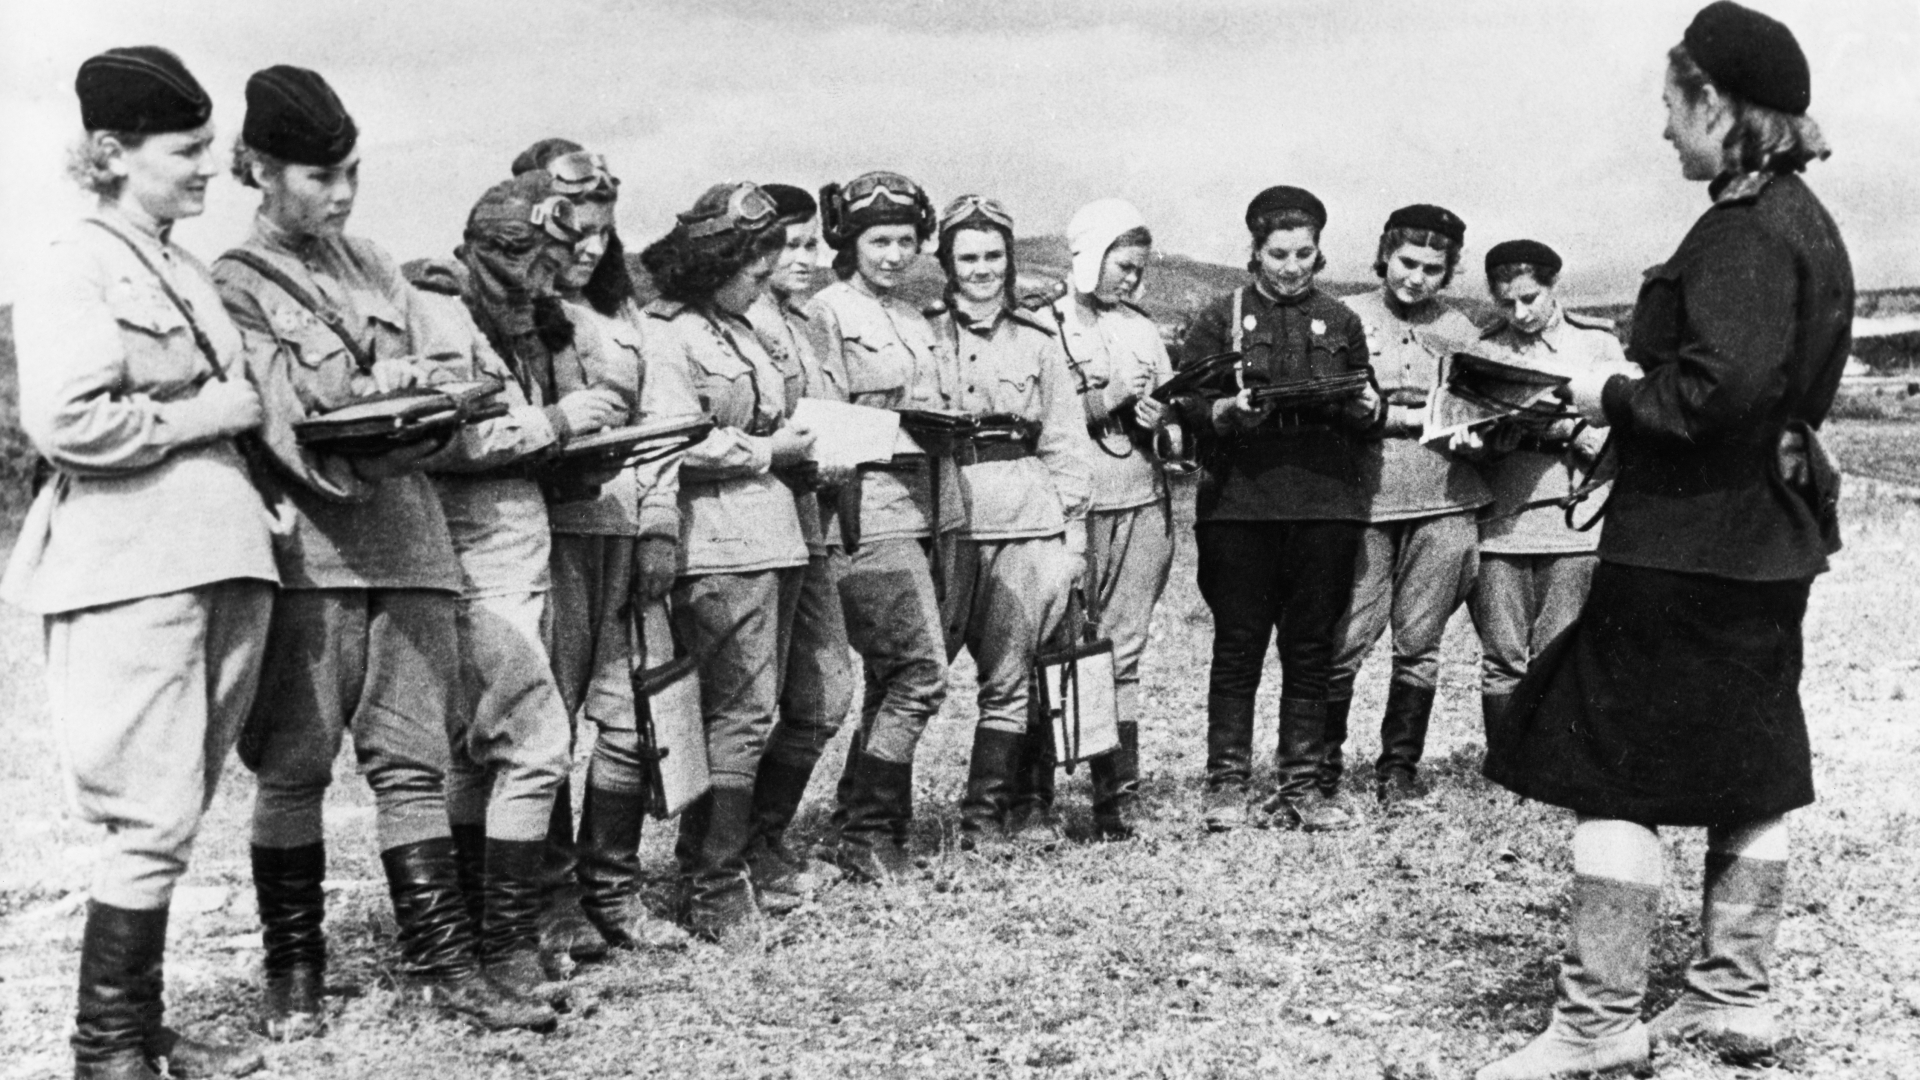 """Women pilots of the """"Night Witches"""" receiving orders for an up-coming raid. (Credit: Sovfoto/UIG via Getty Images)"""